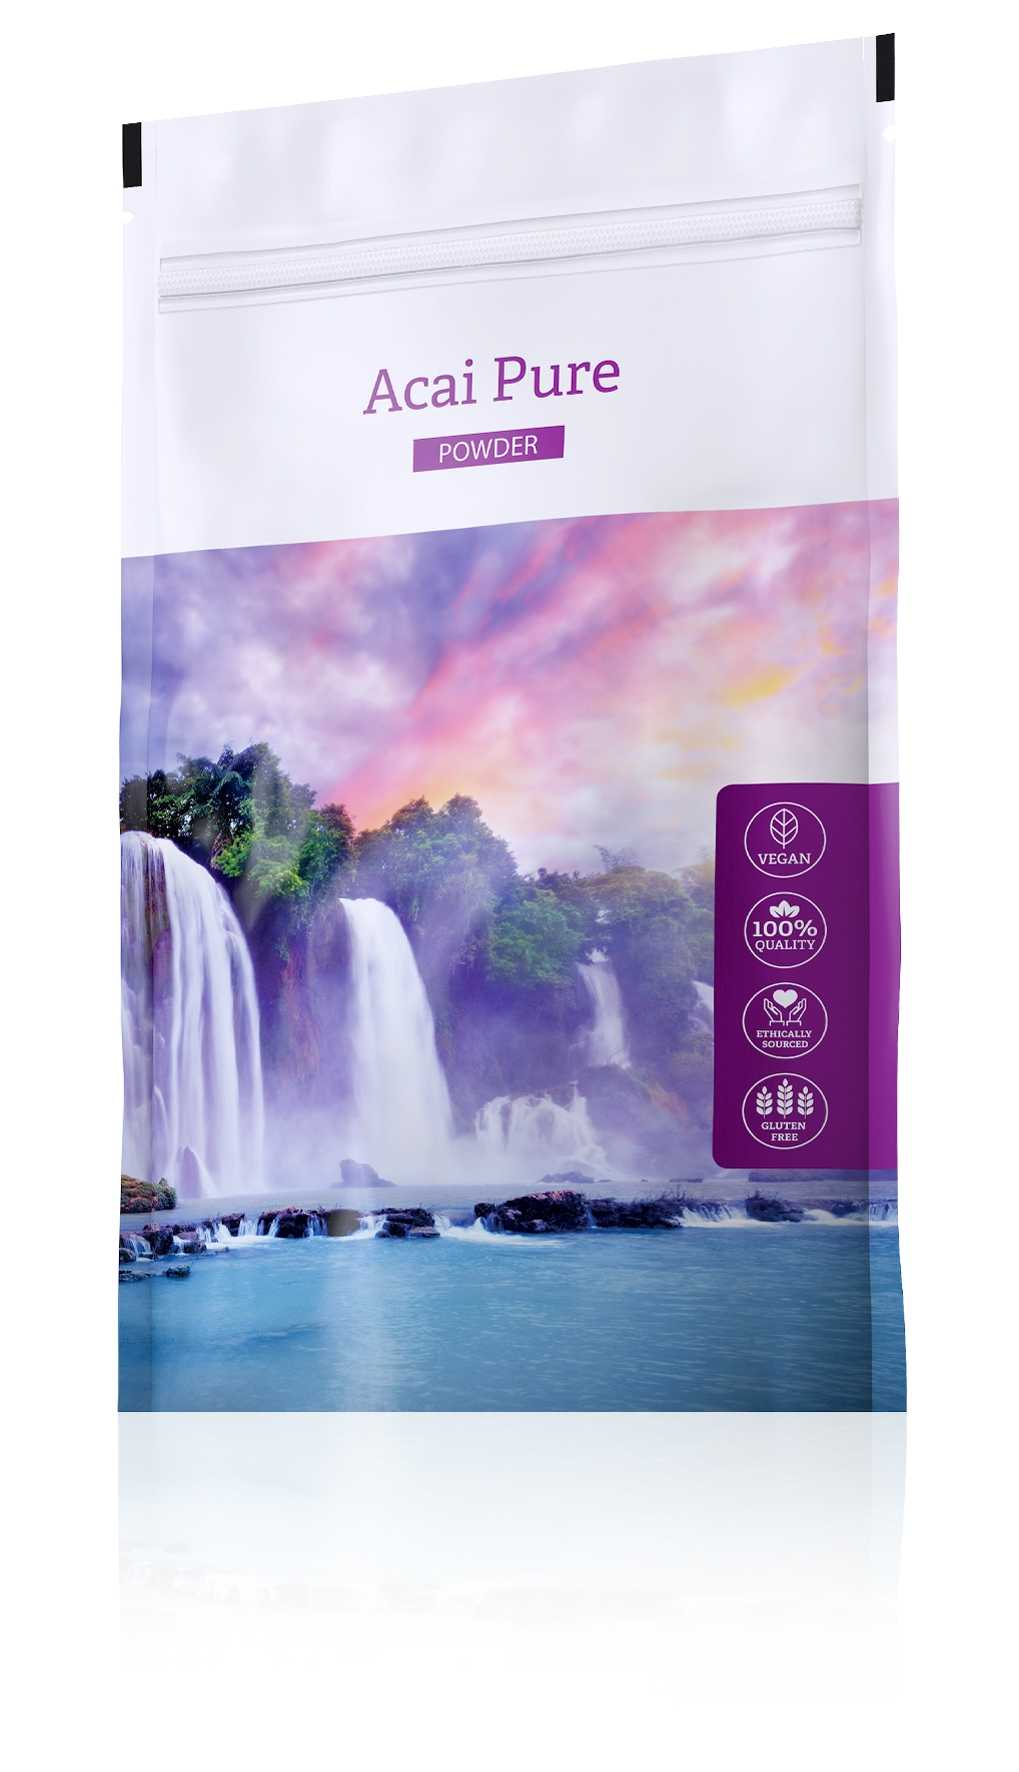 Acai Pure Powder 100g